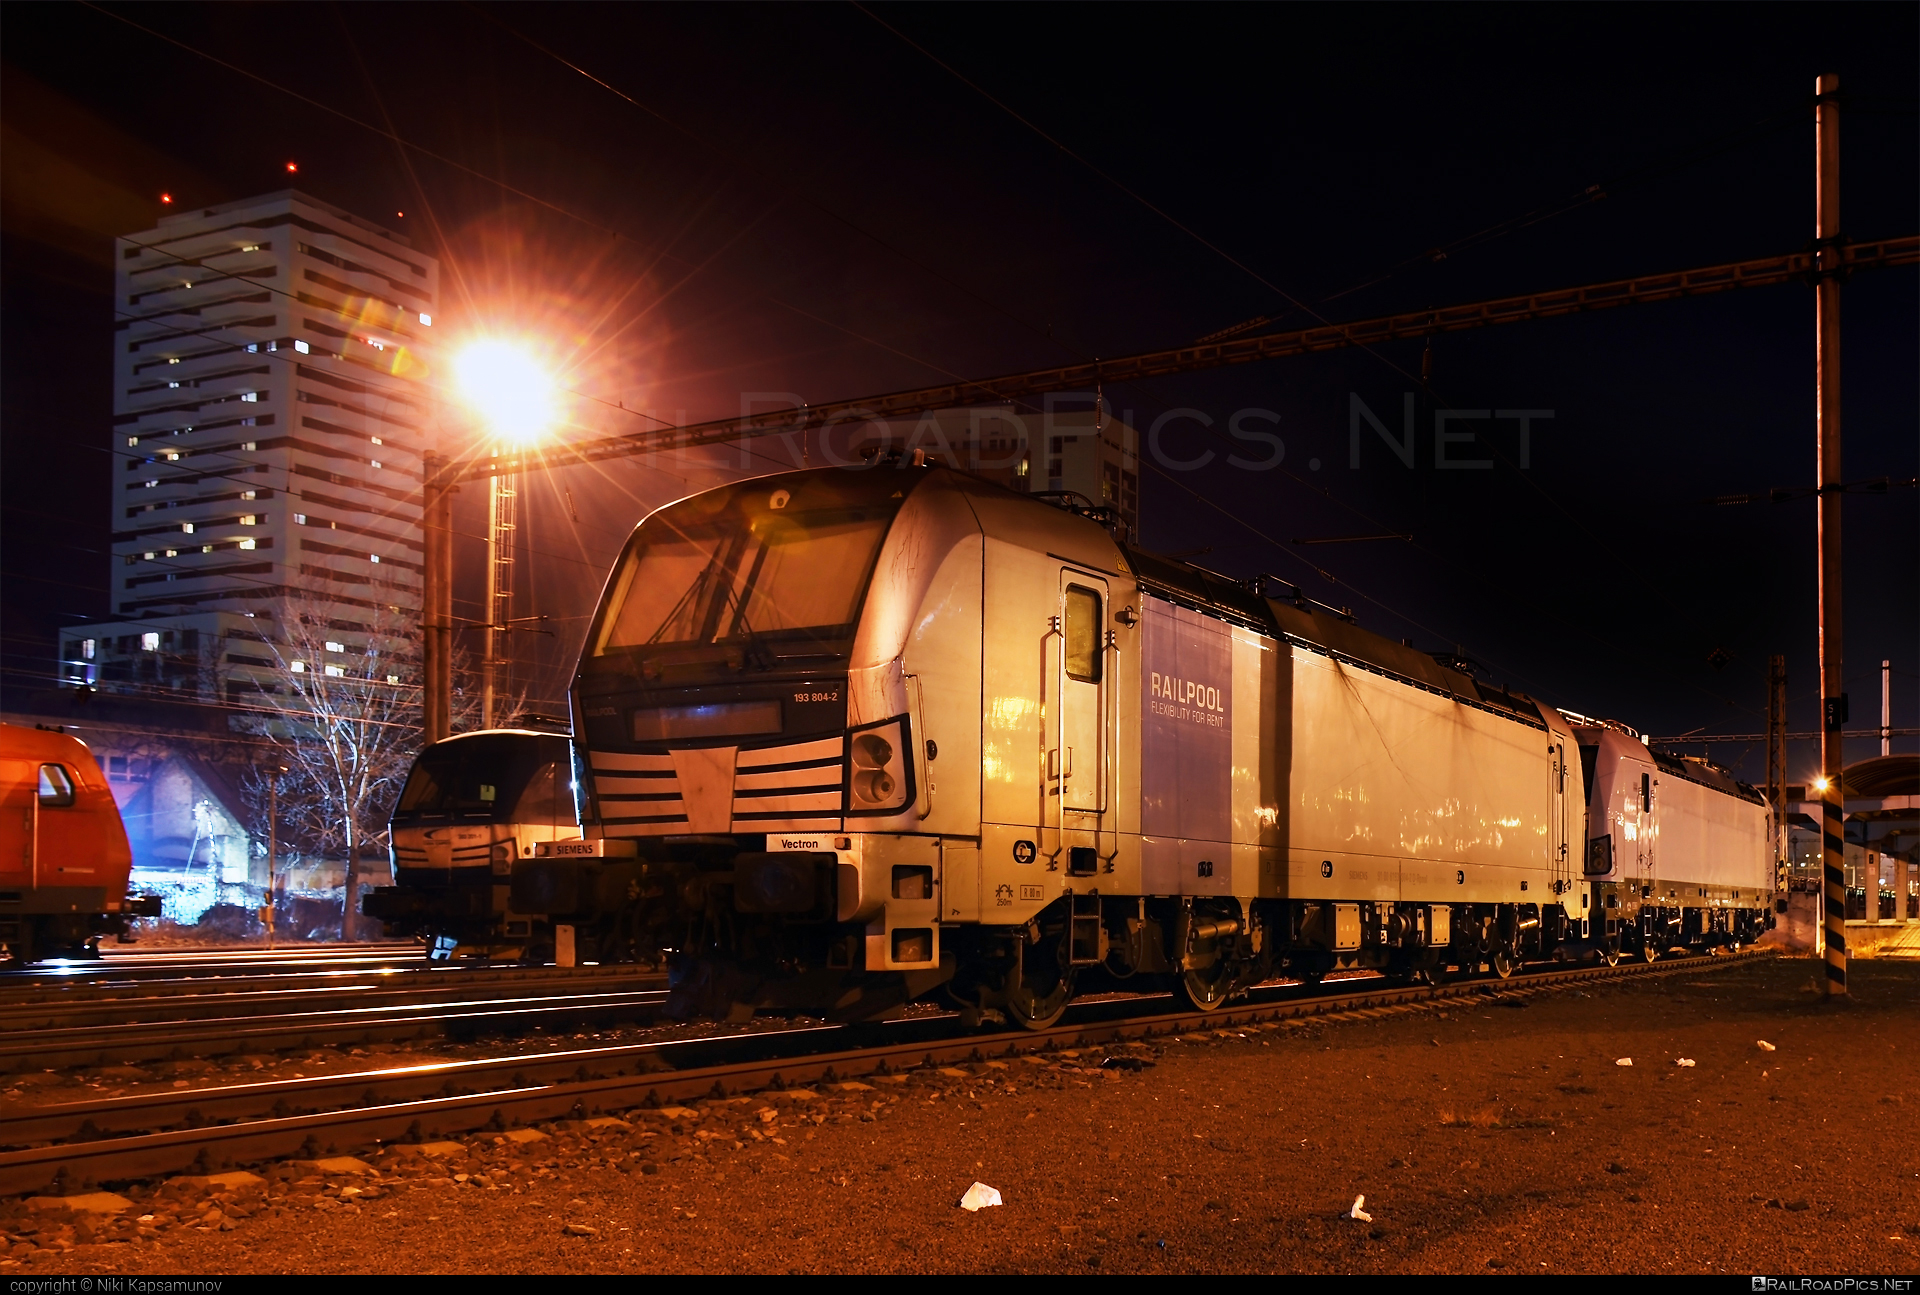 Siemens Vectron AC - 193 804-2 operated by ecco-rail GmbH #eccorail #eccorailgmbh #railpool #railpoolgmbh #siemens #siemensvectron #siemensvectronac #vectron #vectronac